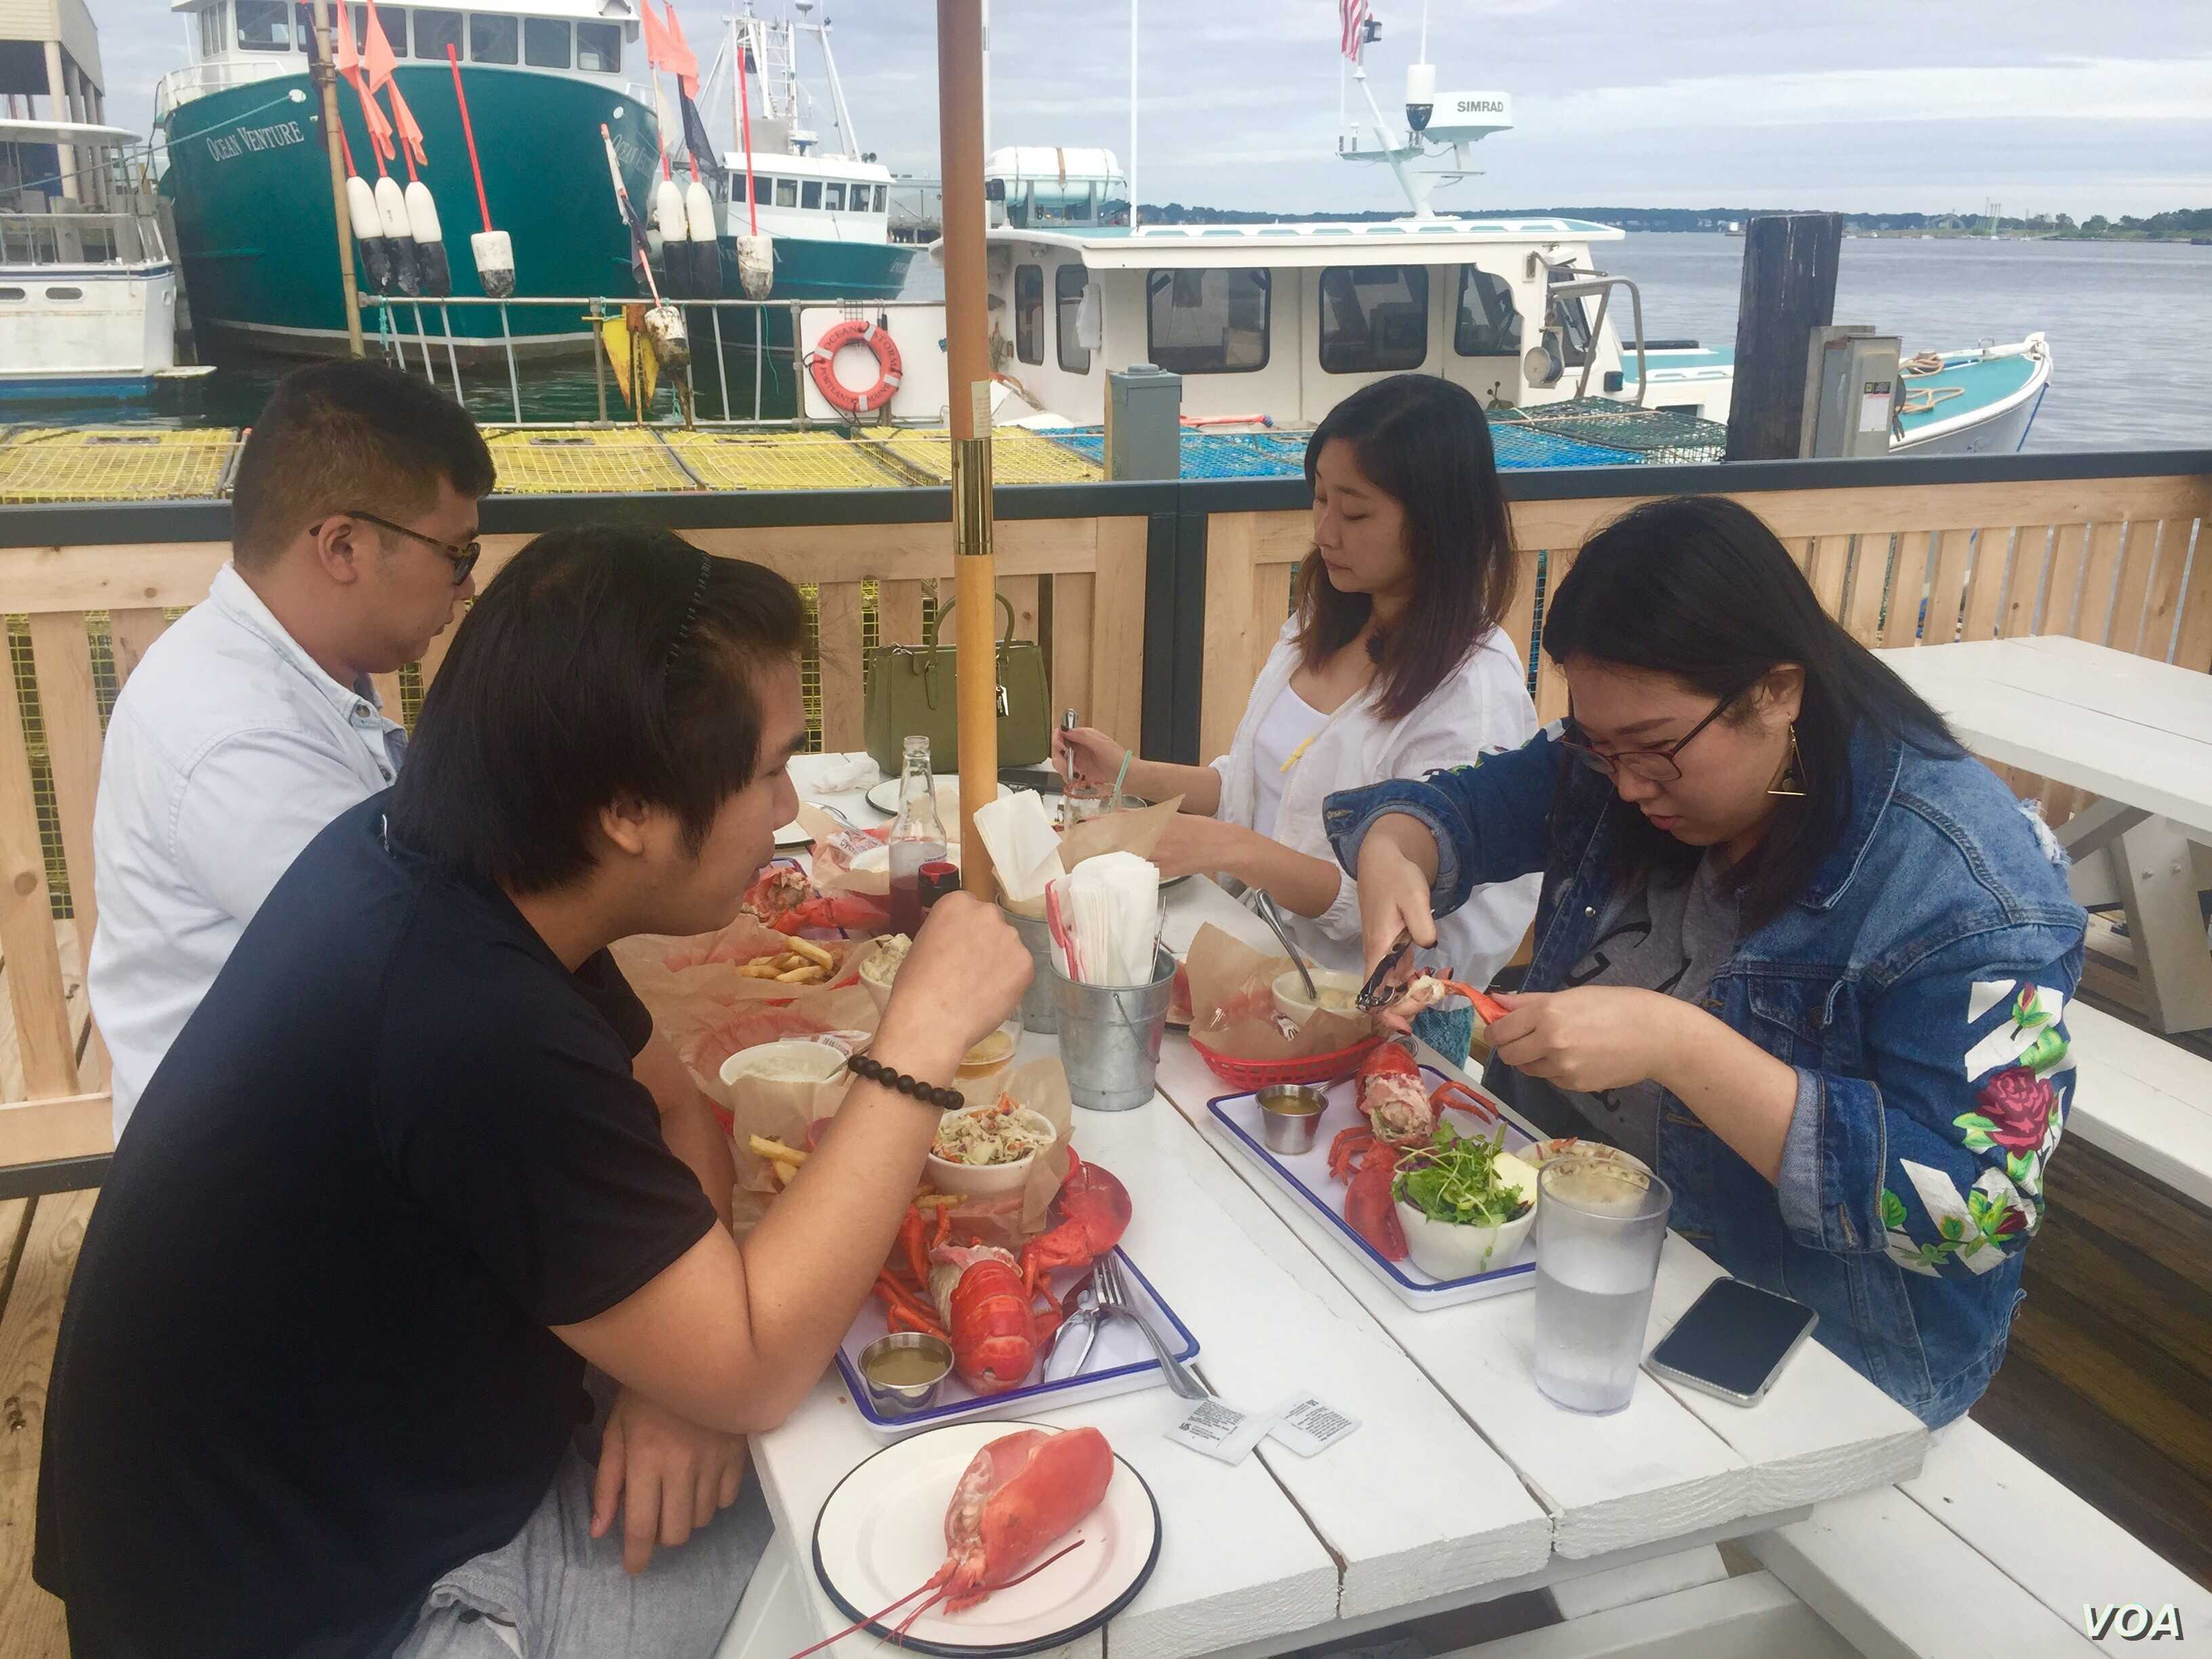 Chinese tourists feast on lobster in Maine. (J.Taboh/VOA)